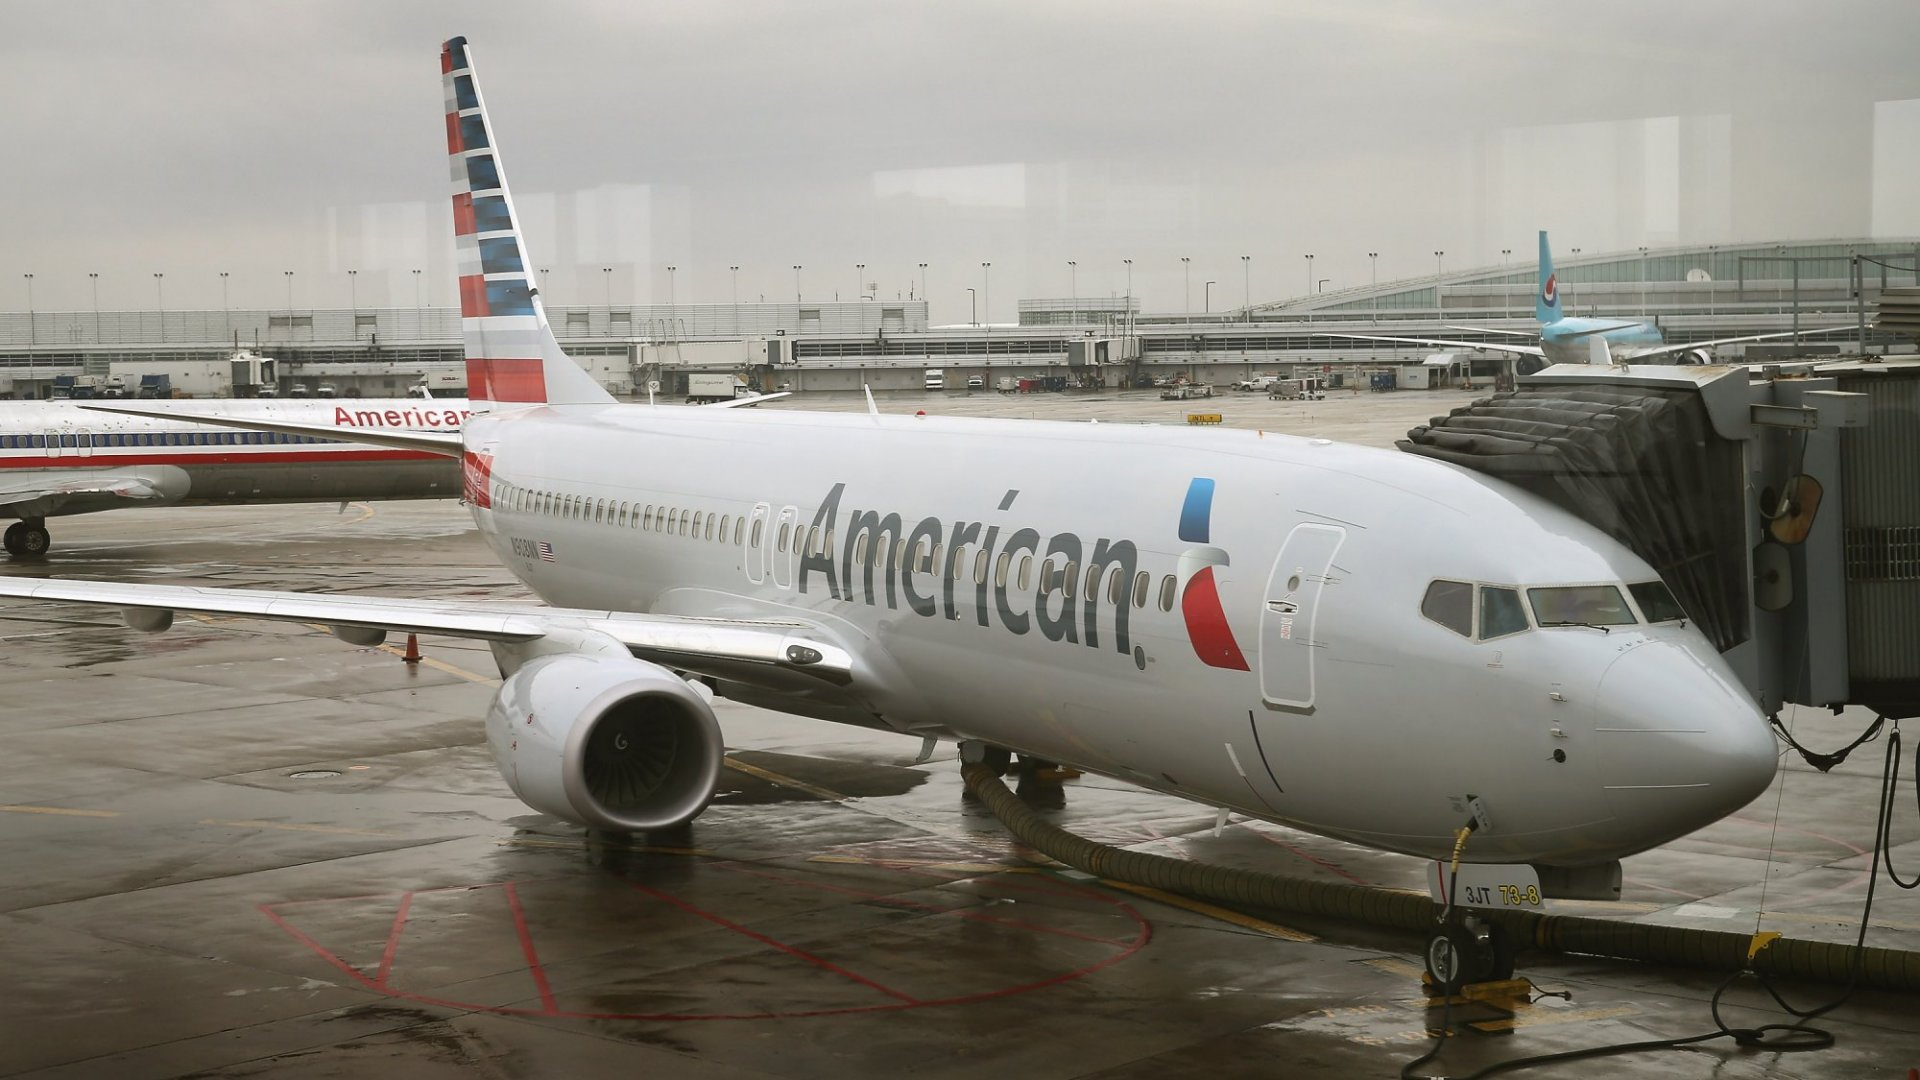 American Airlines Has a 'Cruel' and 'Disastrous' New Policy (Source: American Airlines Flight Attendants)